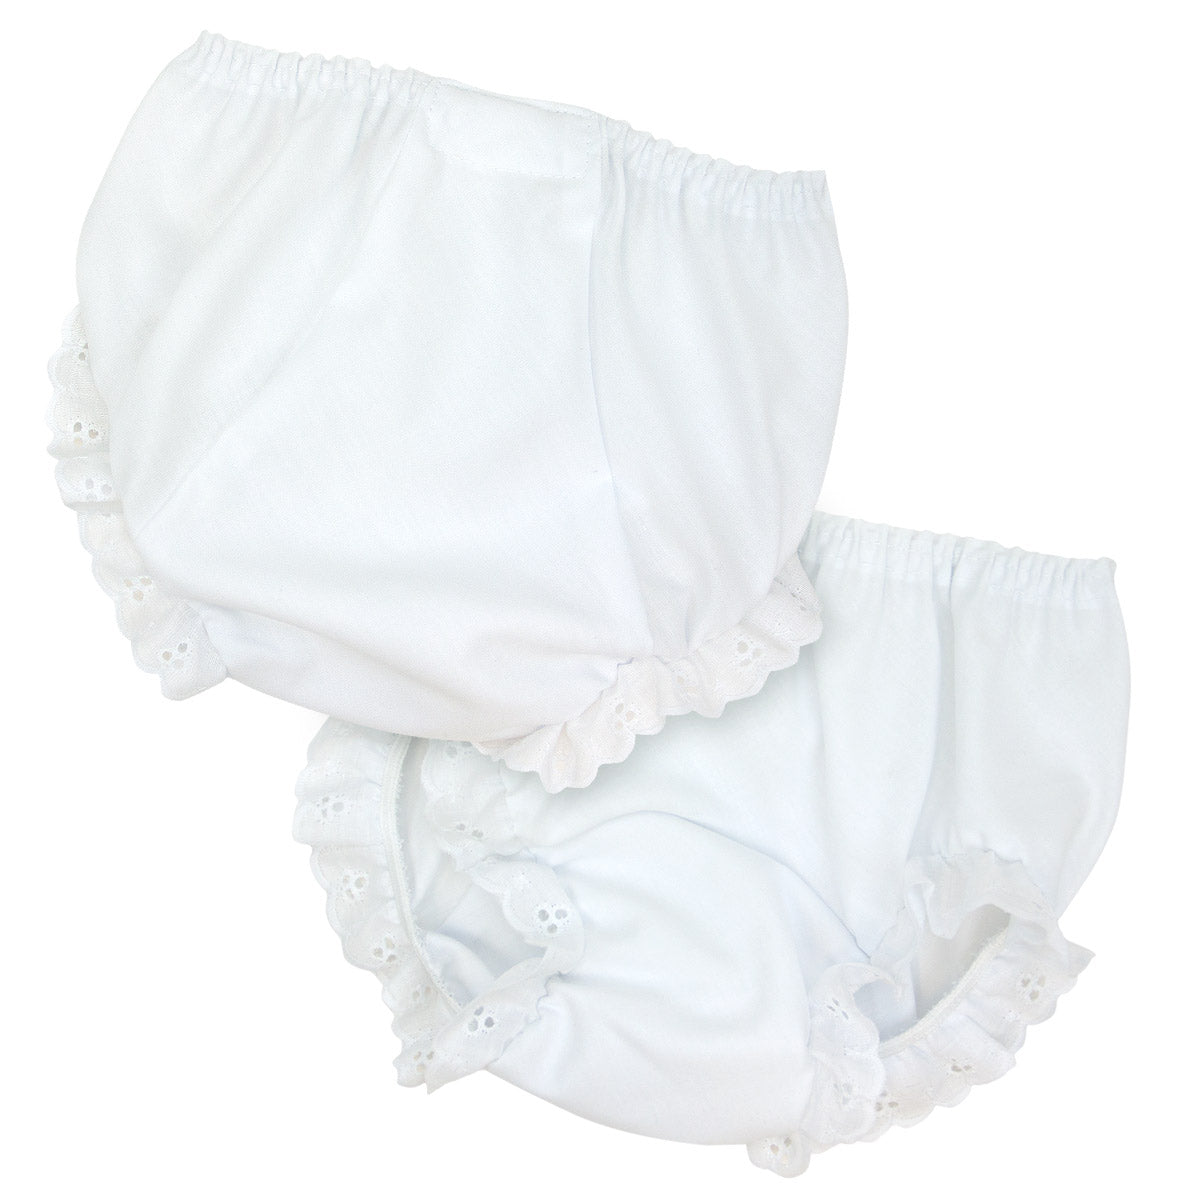 Double Seated Diaper Cover with Eyelet Trim